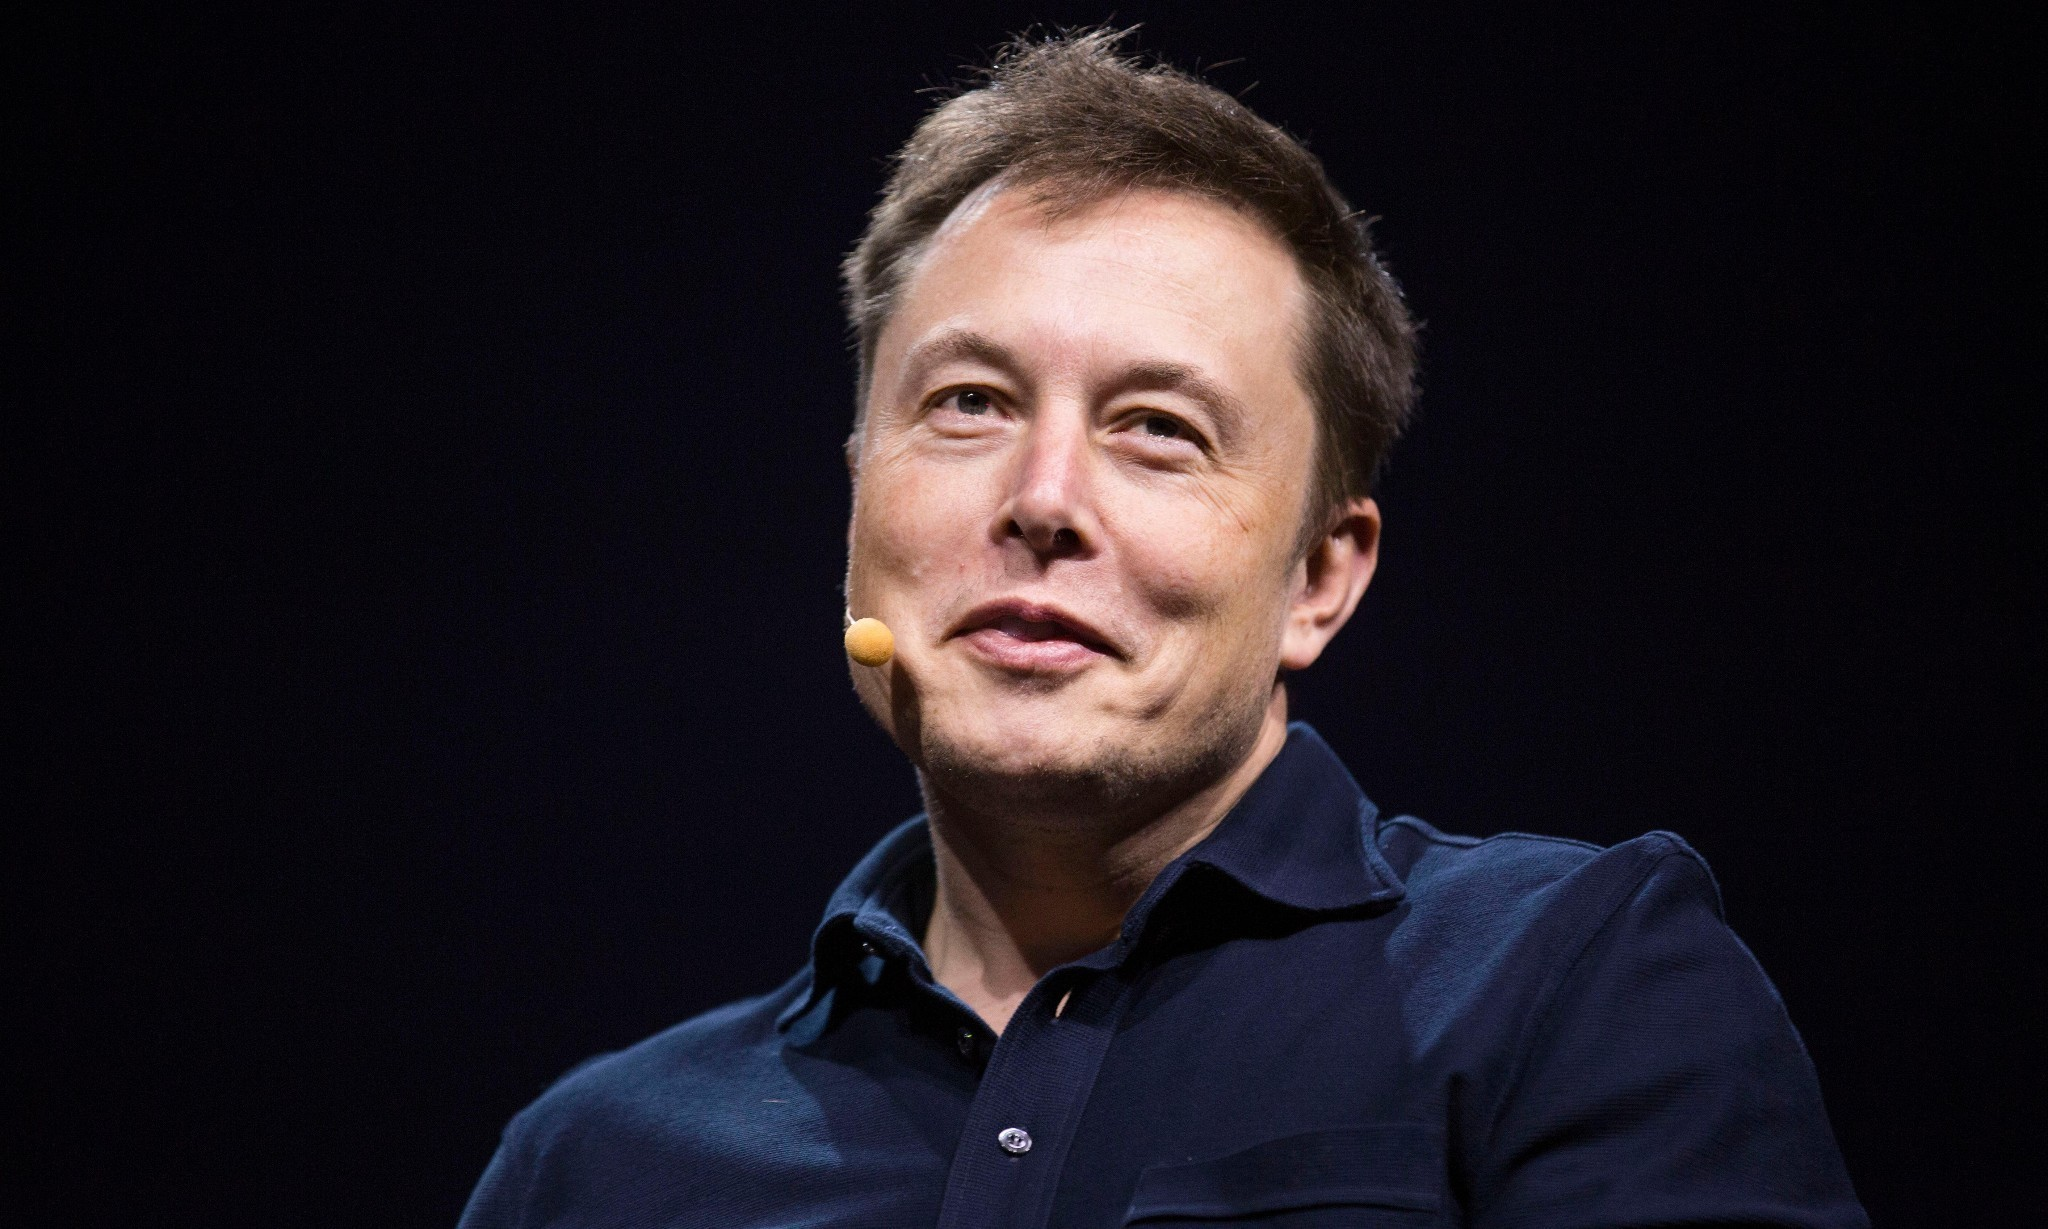 Elon Musk hints that his next project could be an electric plane